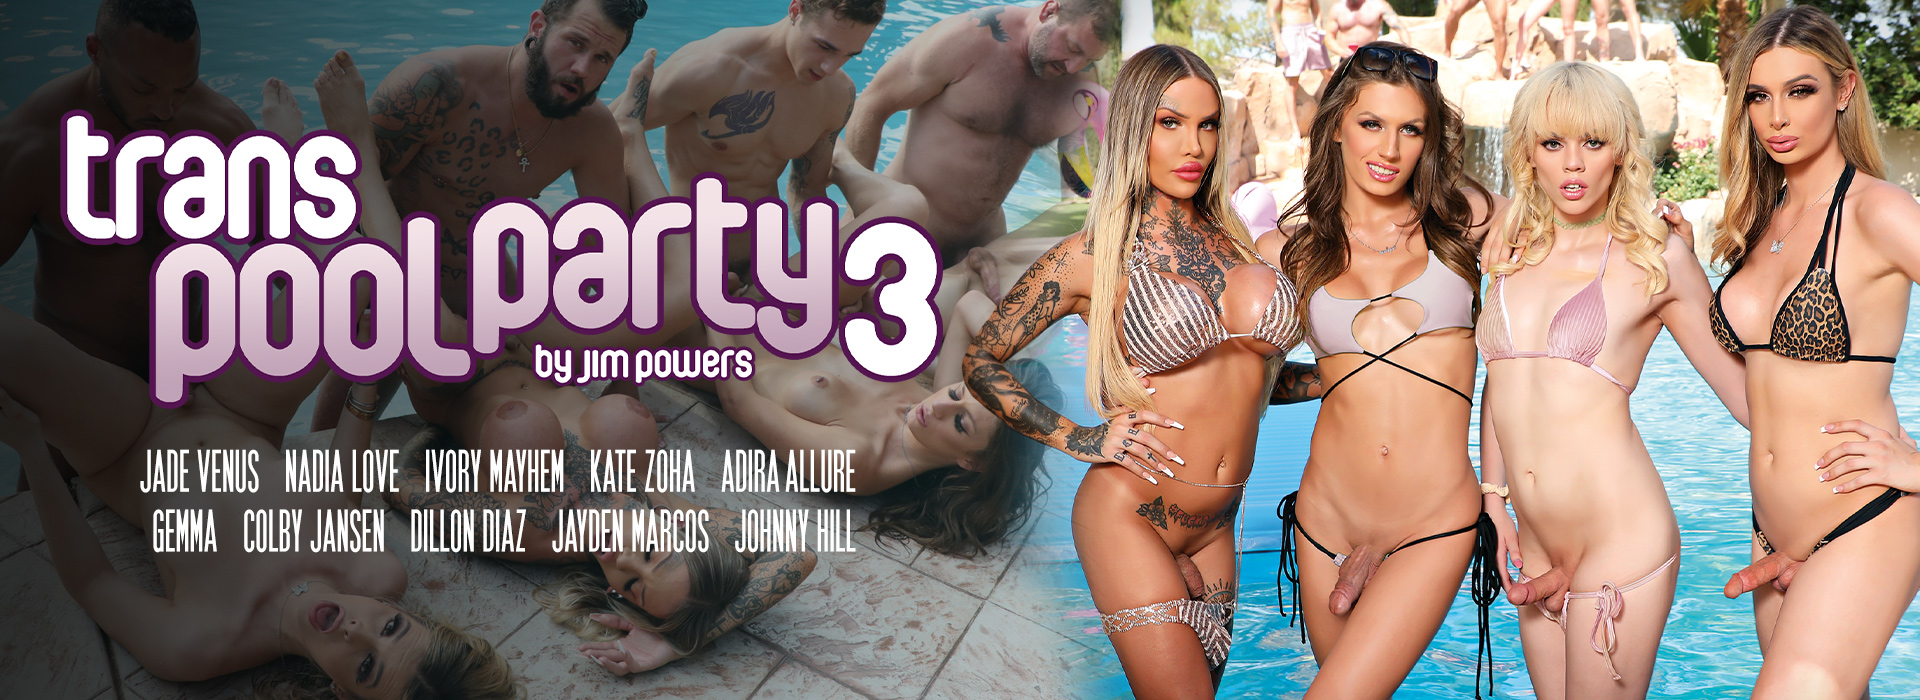 Gender X Trans Pool Party 3